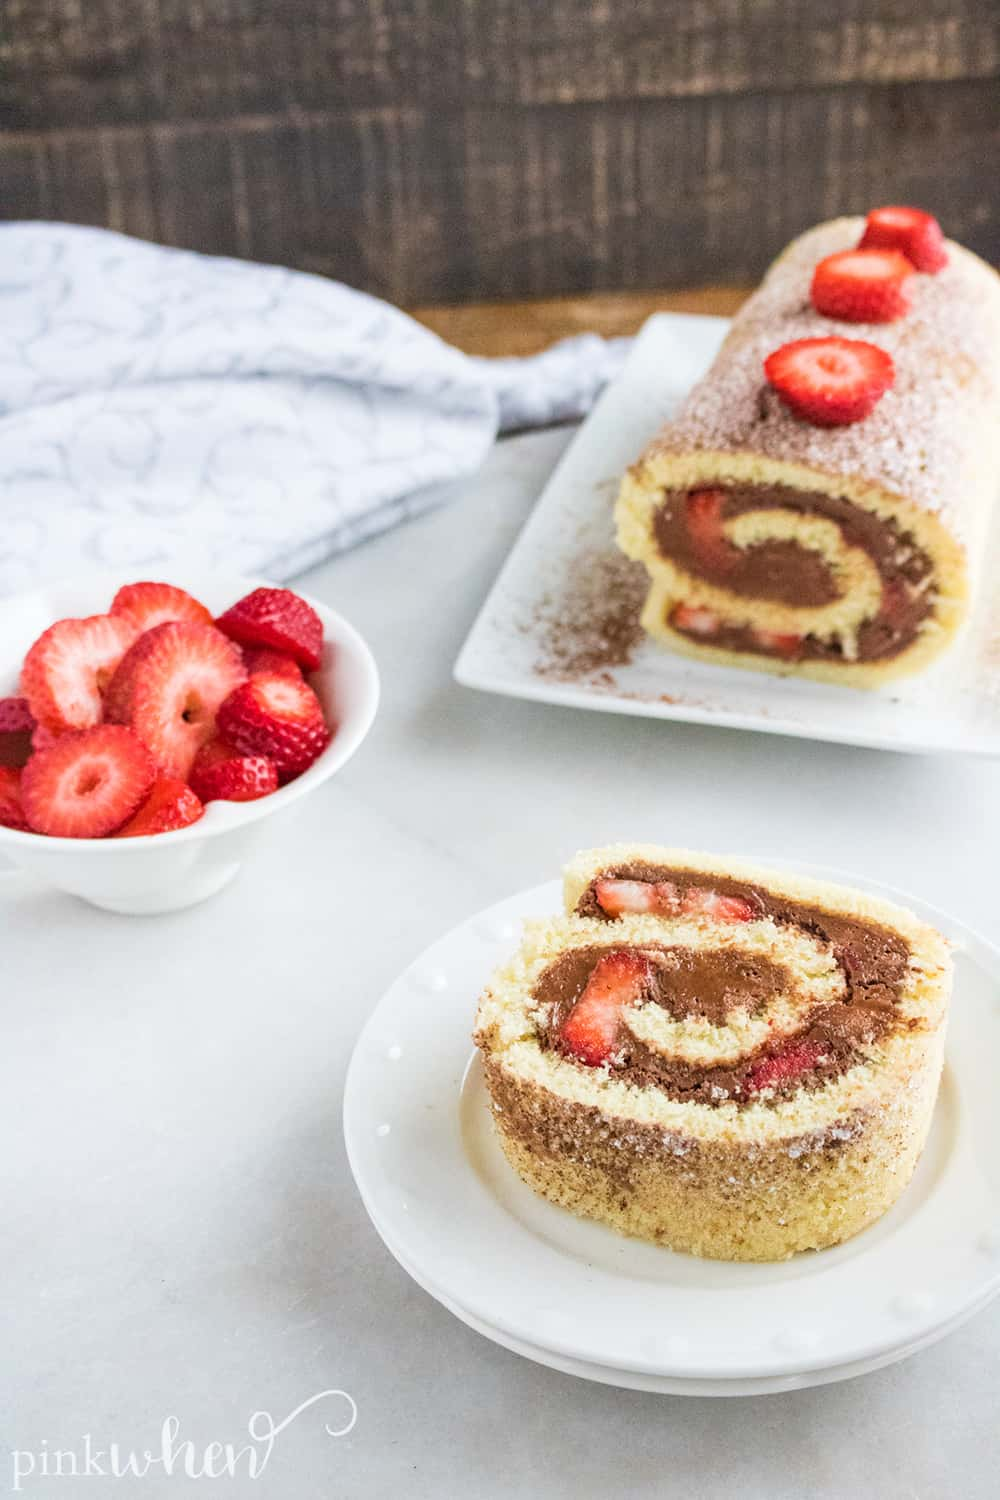 This is one of our new favorite dessert recipes - full of delicious chocolate strawberry flavor! This chocolate ganache cake roll recipe is so sweet, spongey, moist, and delicious! This chocolate roll cake will easily become a favorite in your household!